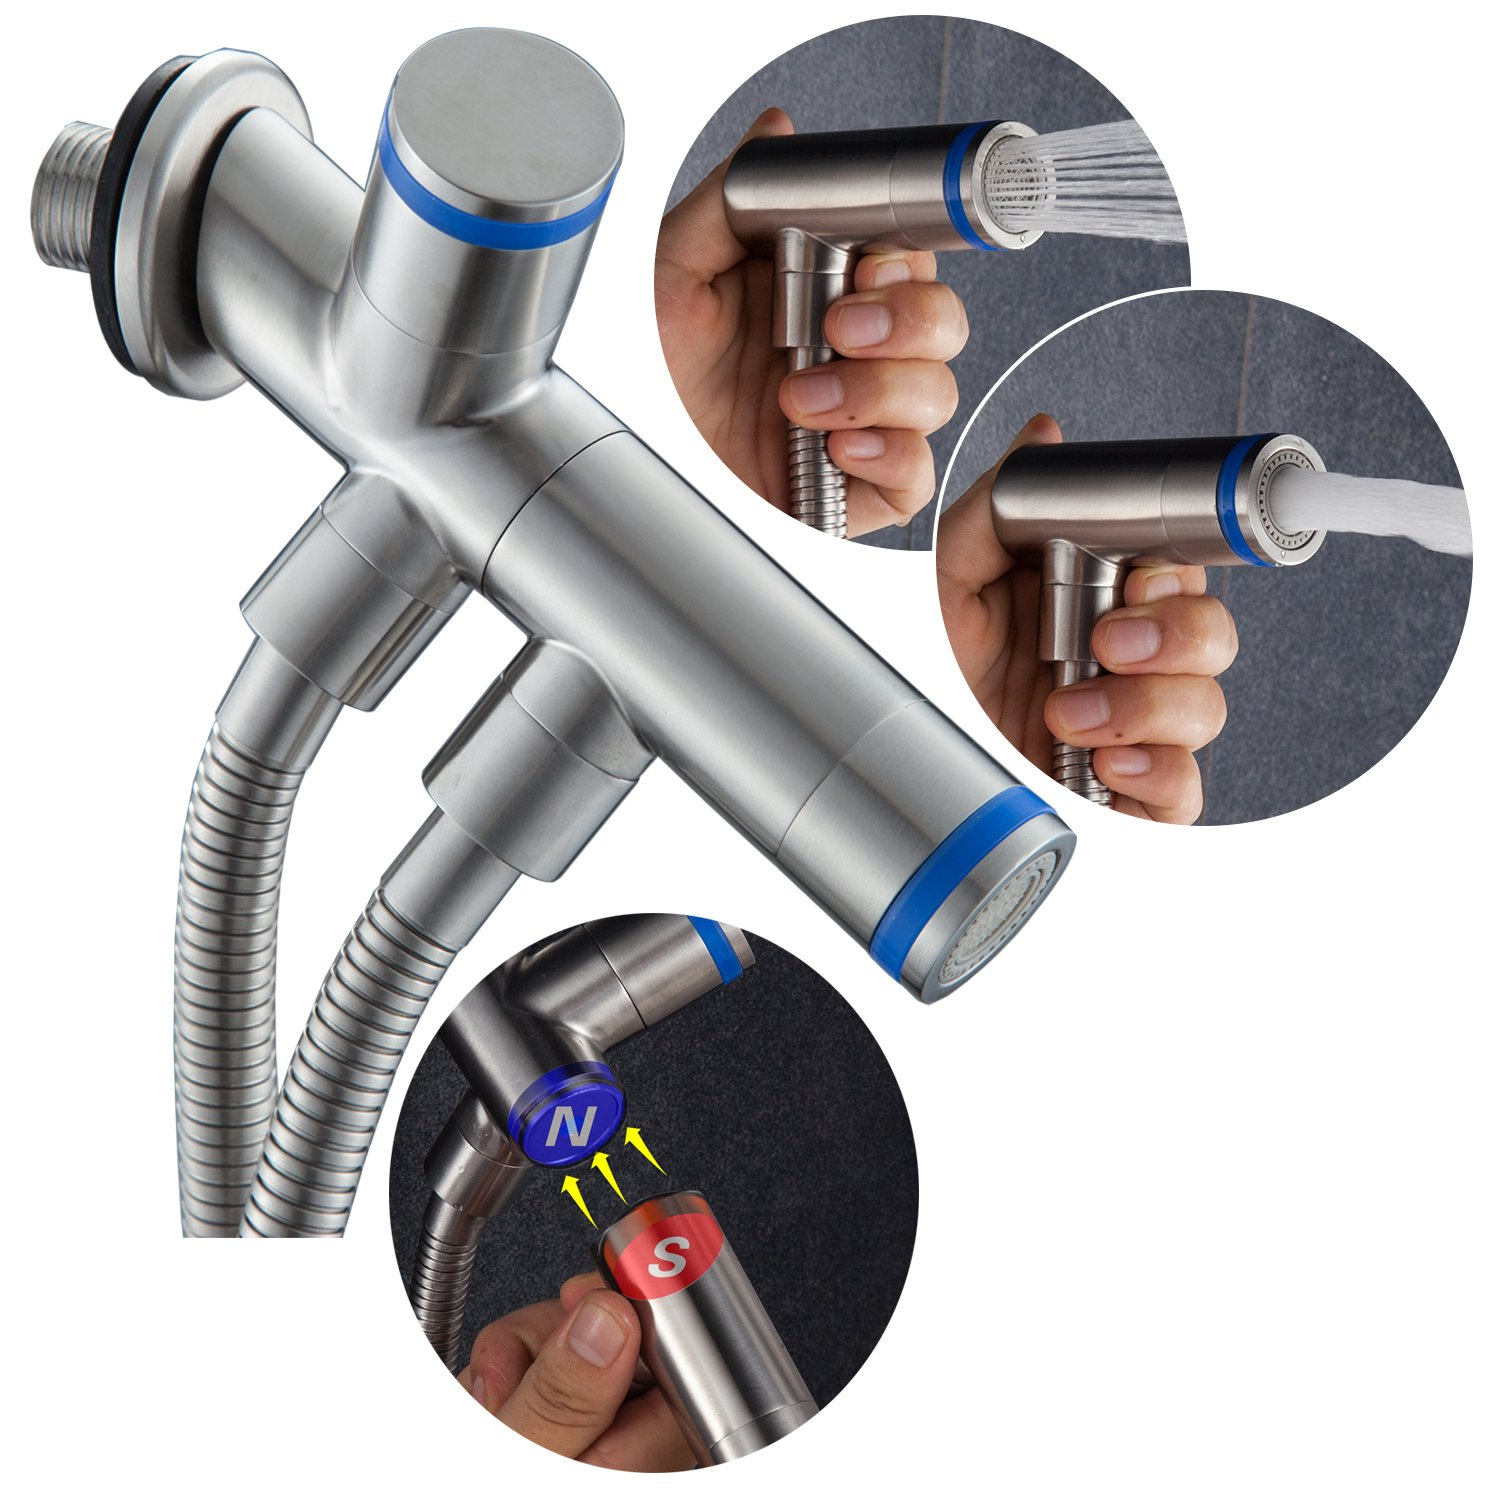 CIENCIA Magnetic Suction Hand Held Bidet Sprayer Stainless Steel Sprayer Shattaf - Complete Bidet Set for Toilet, Hand Bidet Sprayer for Toilet WS031F